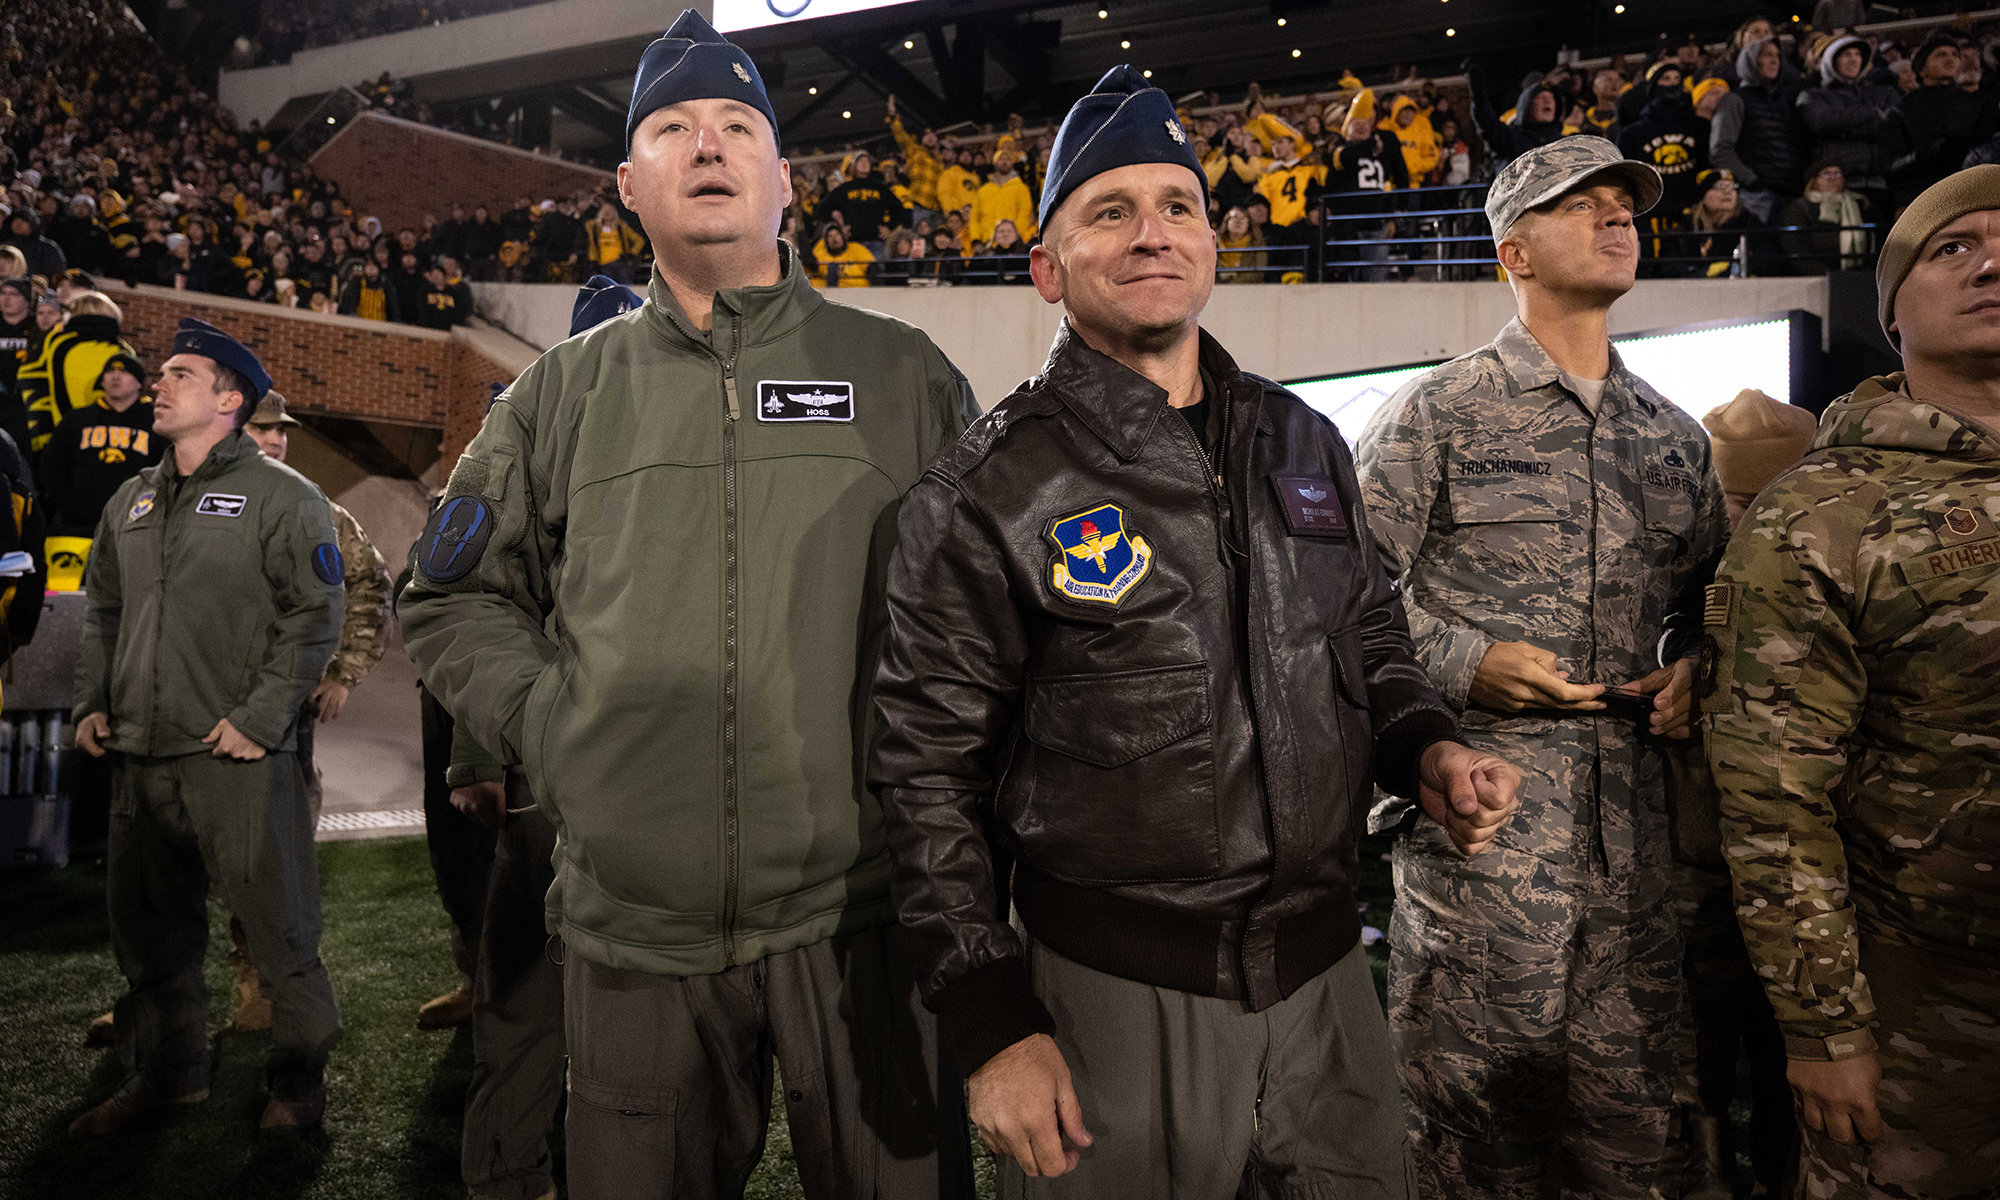 university of iowa alumni Lt. Col. Michael Lynch and Lt. Col. Nicholas Edwards on the sidelines at Kinnick Stadium